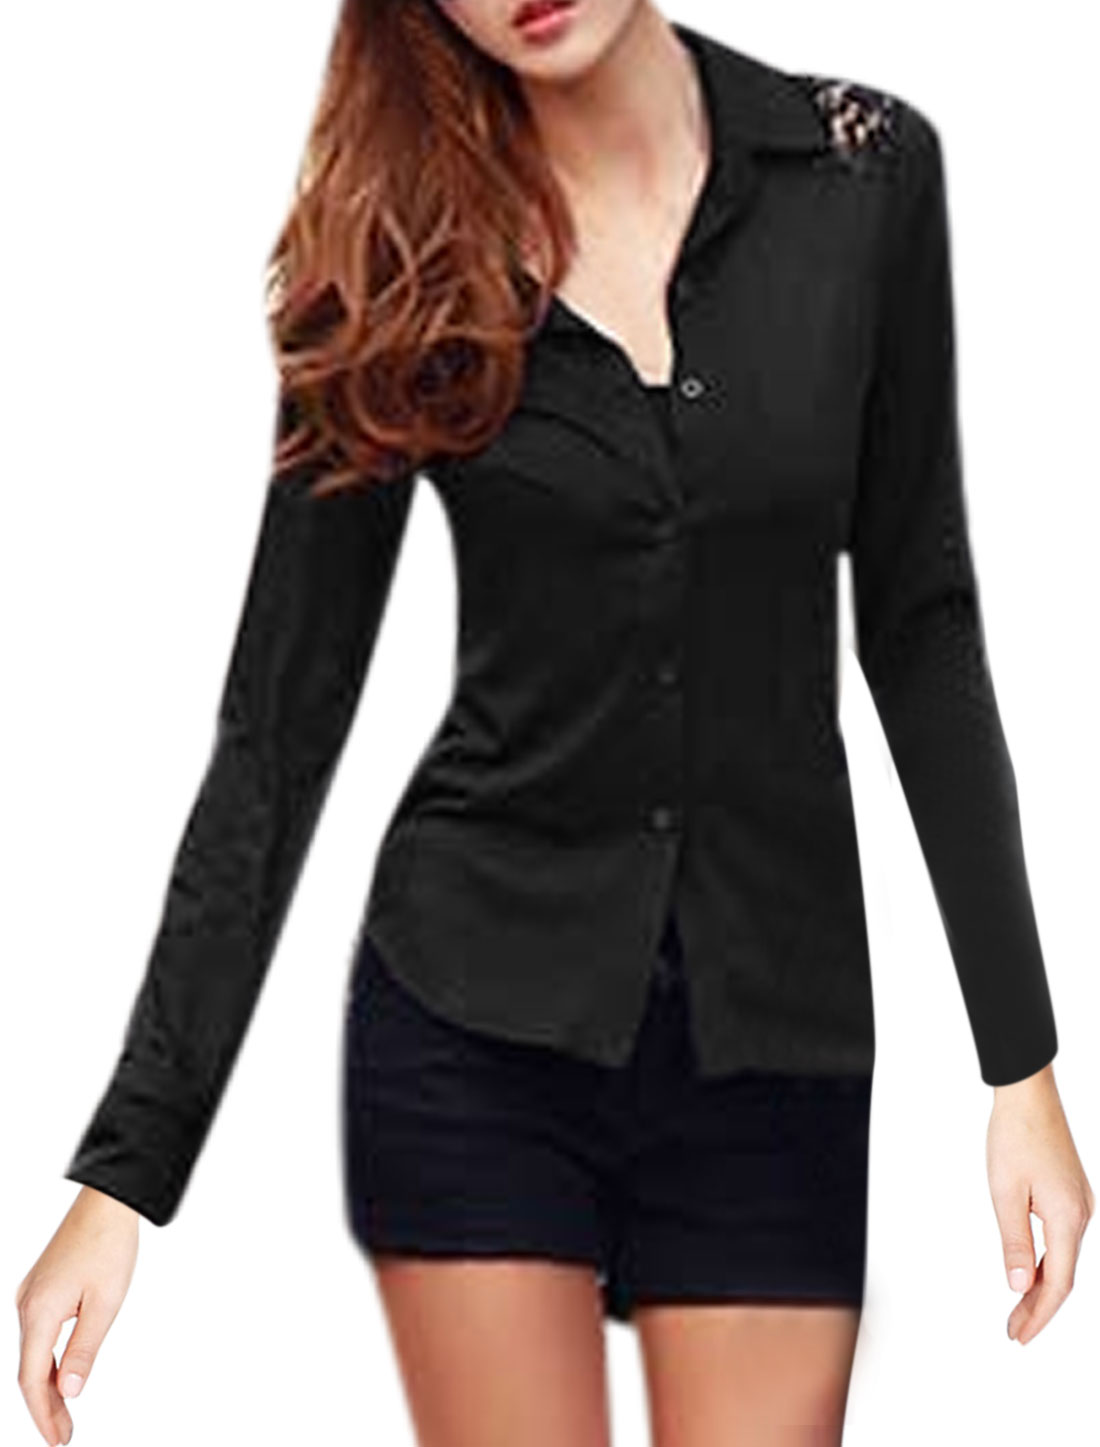 Ladies Black Long Sleeves Point Collar Single Breasted Lace Splice Casual Shirt S